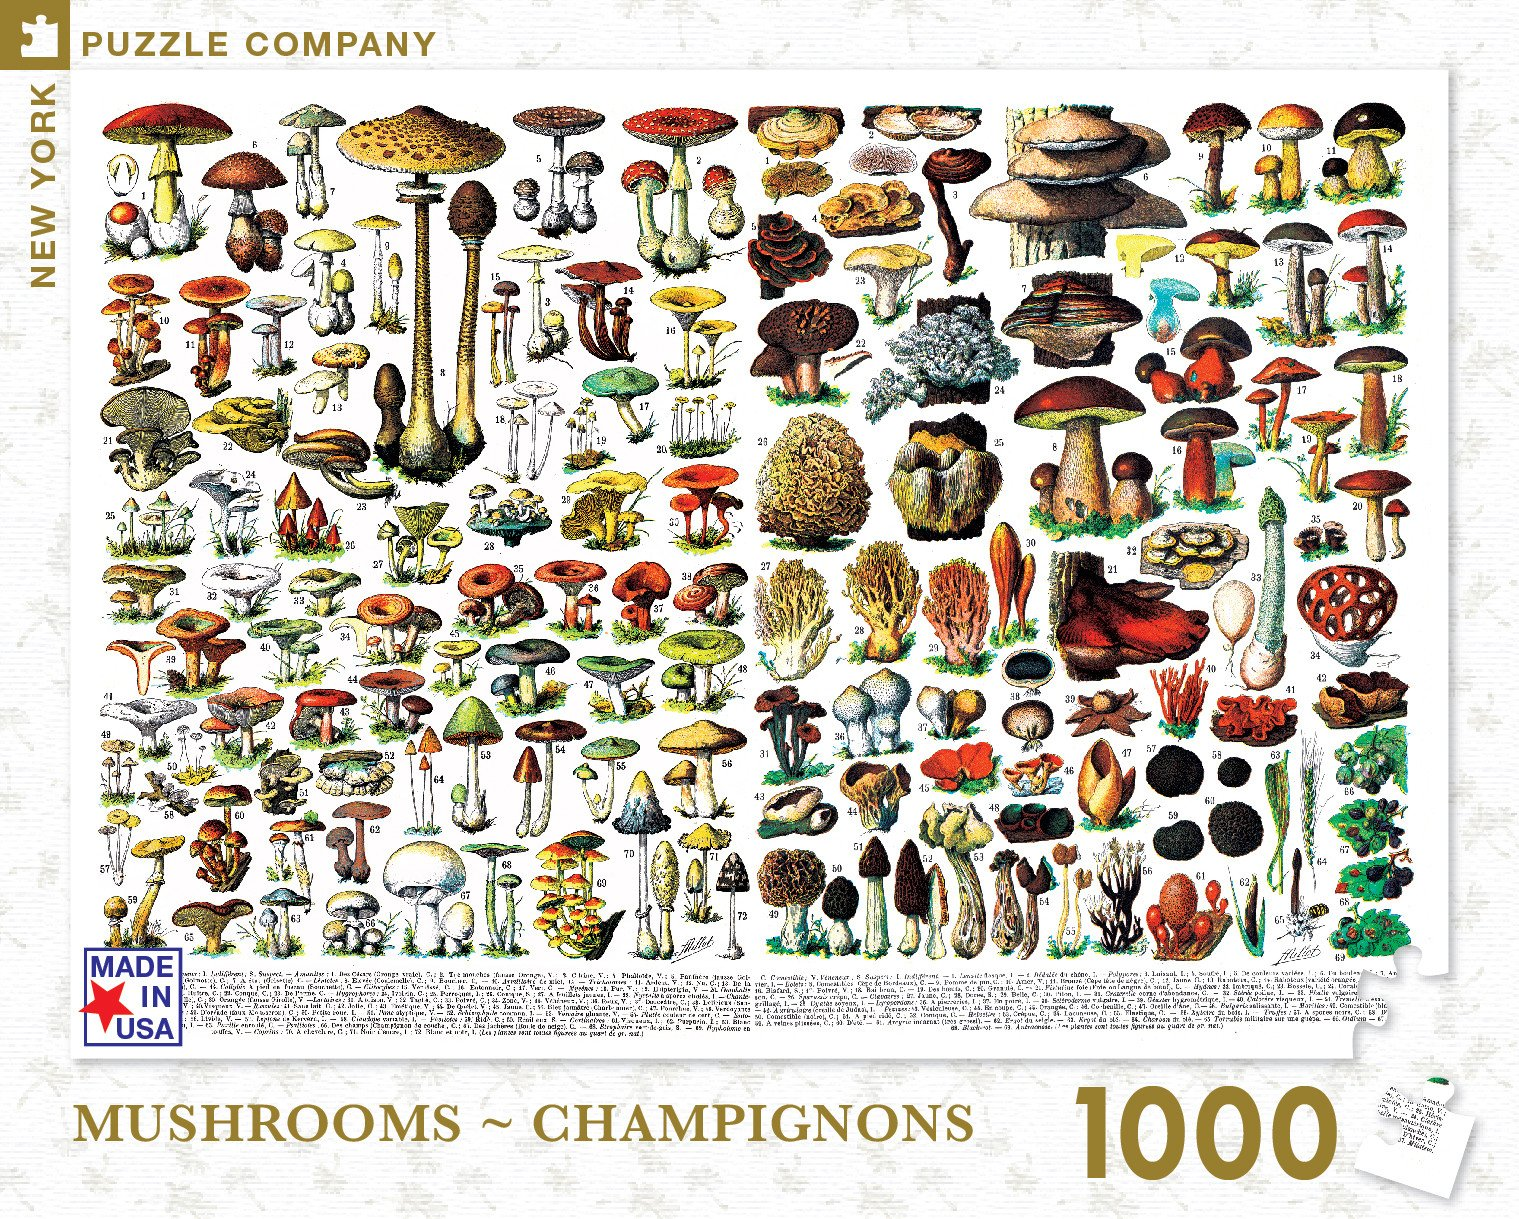 Mushrooms ~ Champignons: 1000 Piece Puzzle